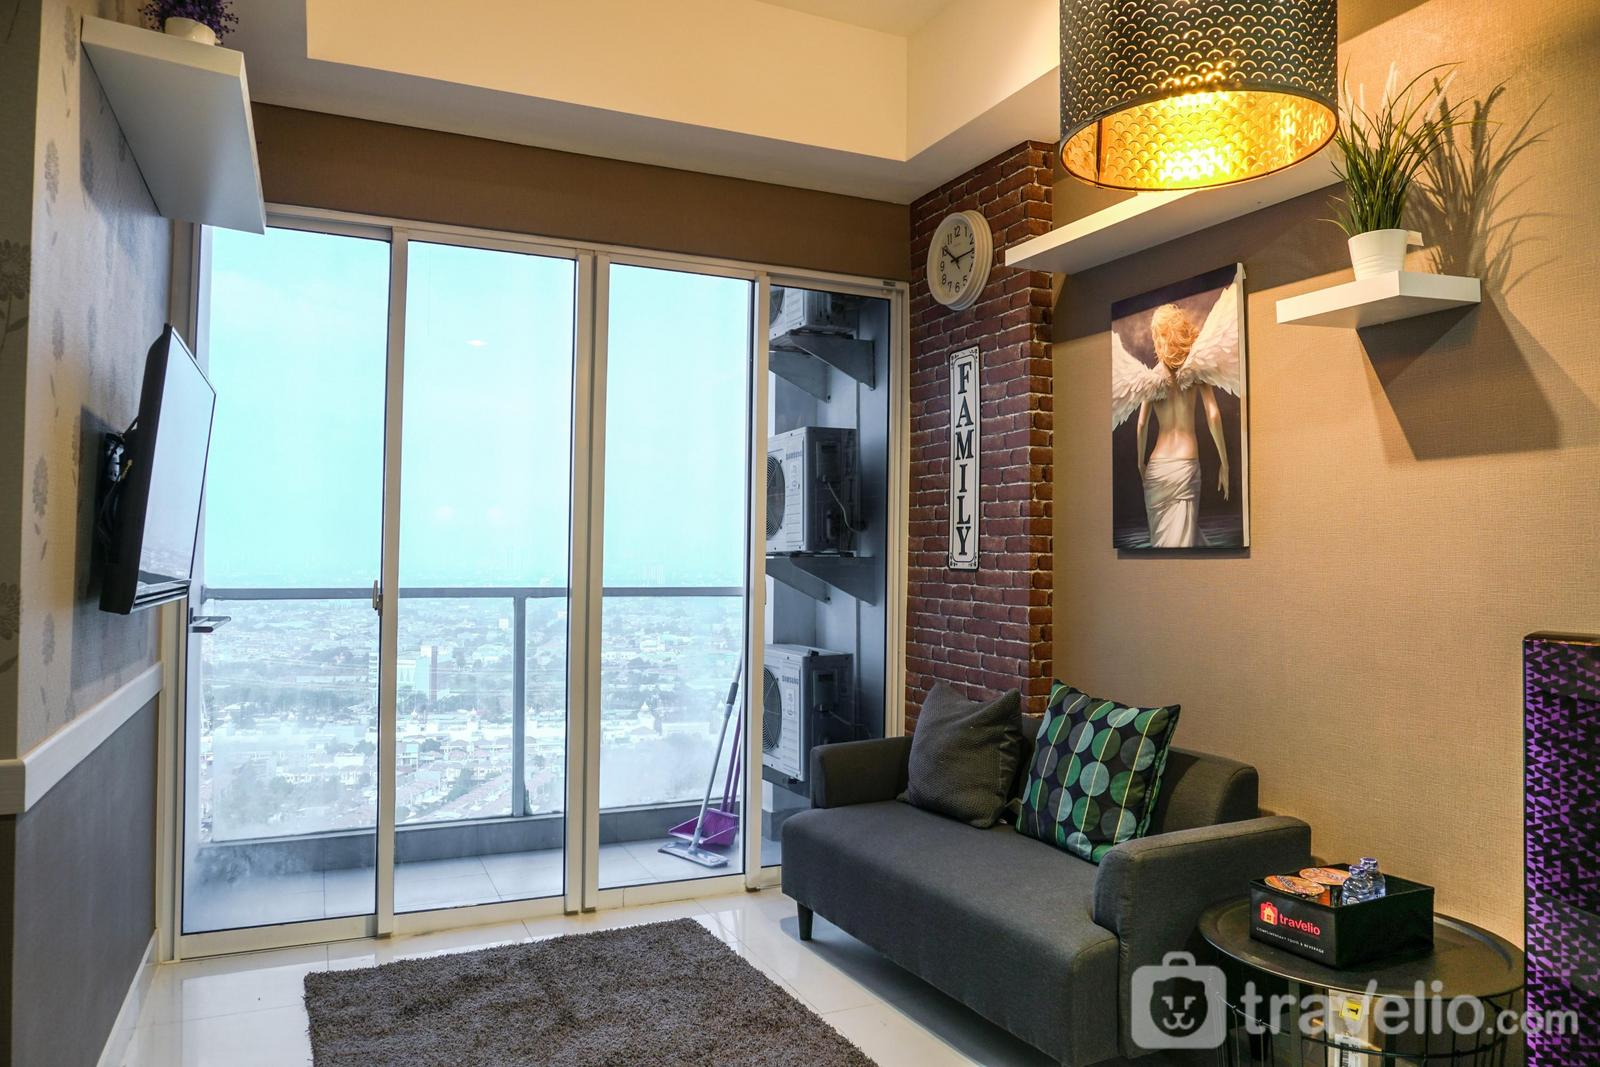 Apartemen Puri Mansion - 2BR Apartment at Puri Mansion near Puri Indah Mall By Travelio